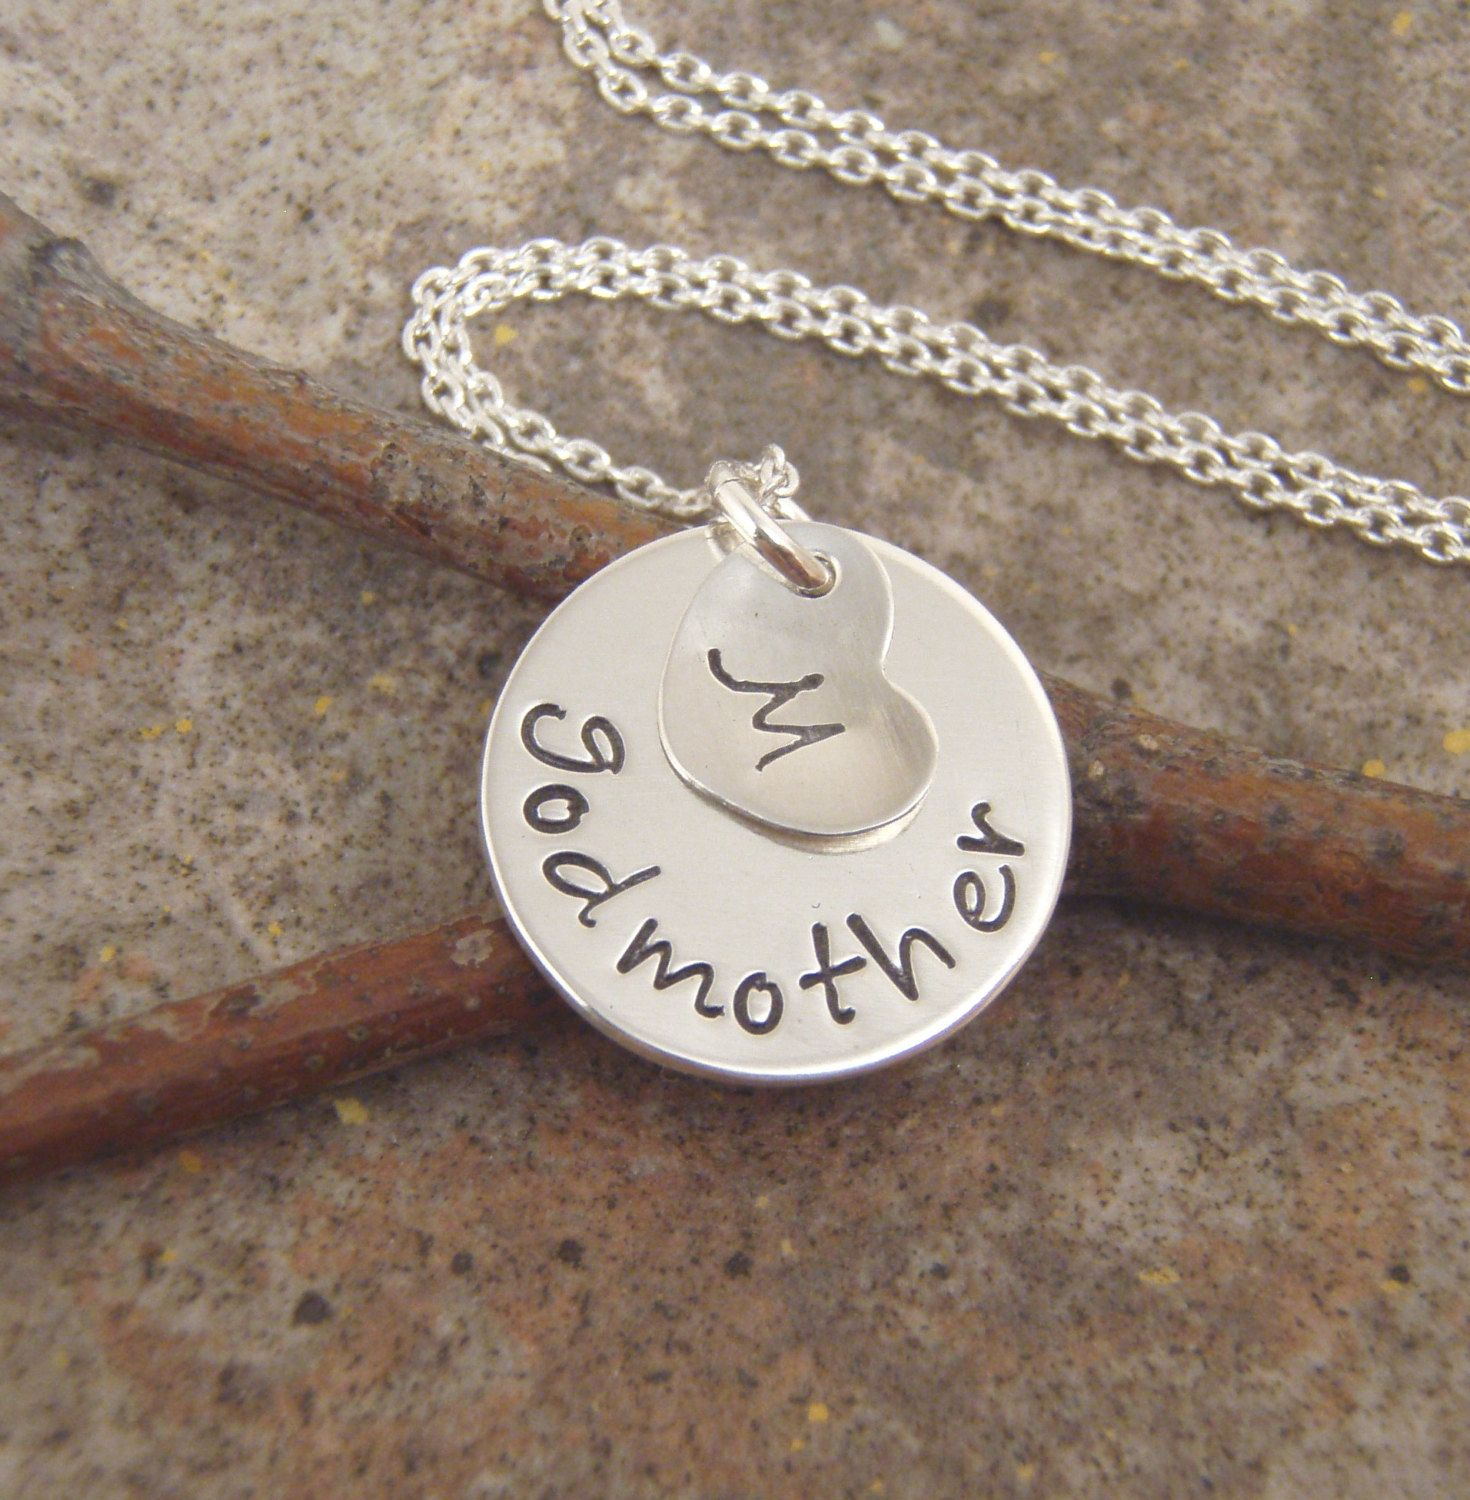 Godmother necklace dainty godmother charm with godchilds initial godmother necklace dainty godmother charm with godchilds initial sterling silver name necklace photo not actual size aloadofball Gallery